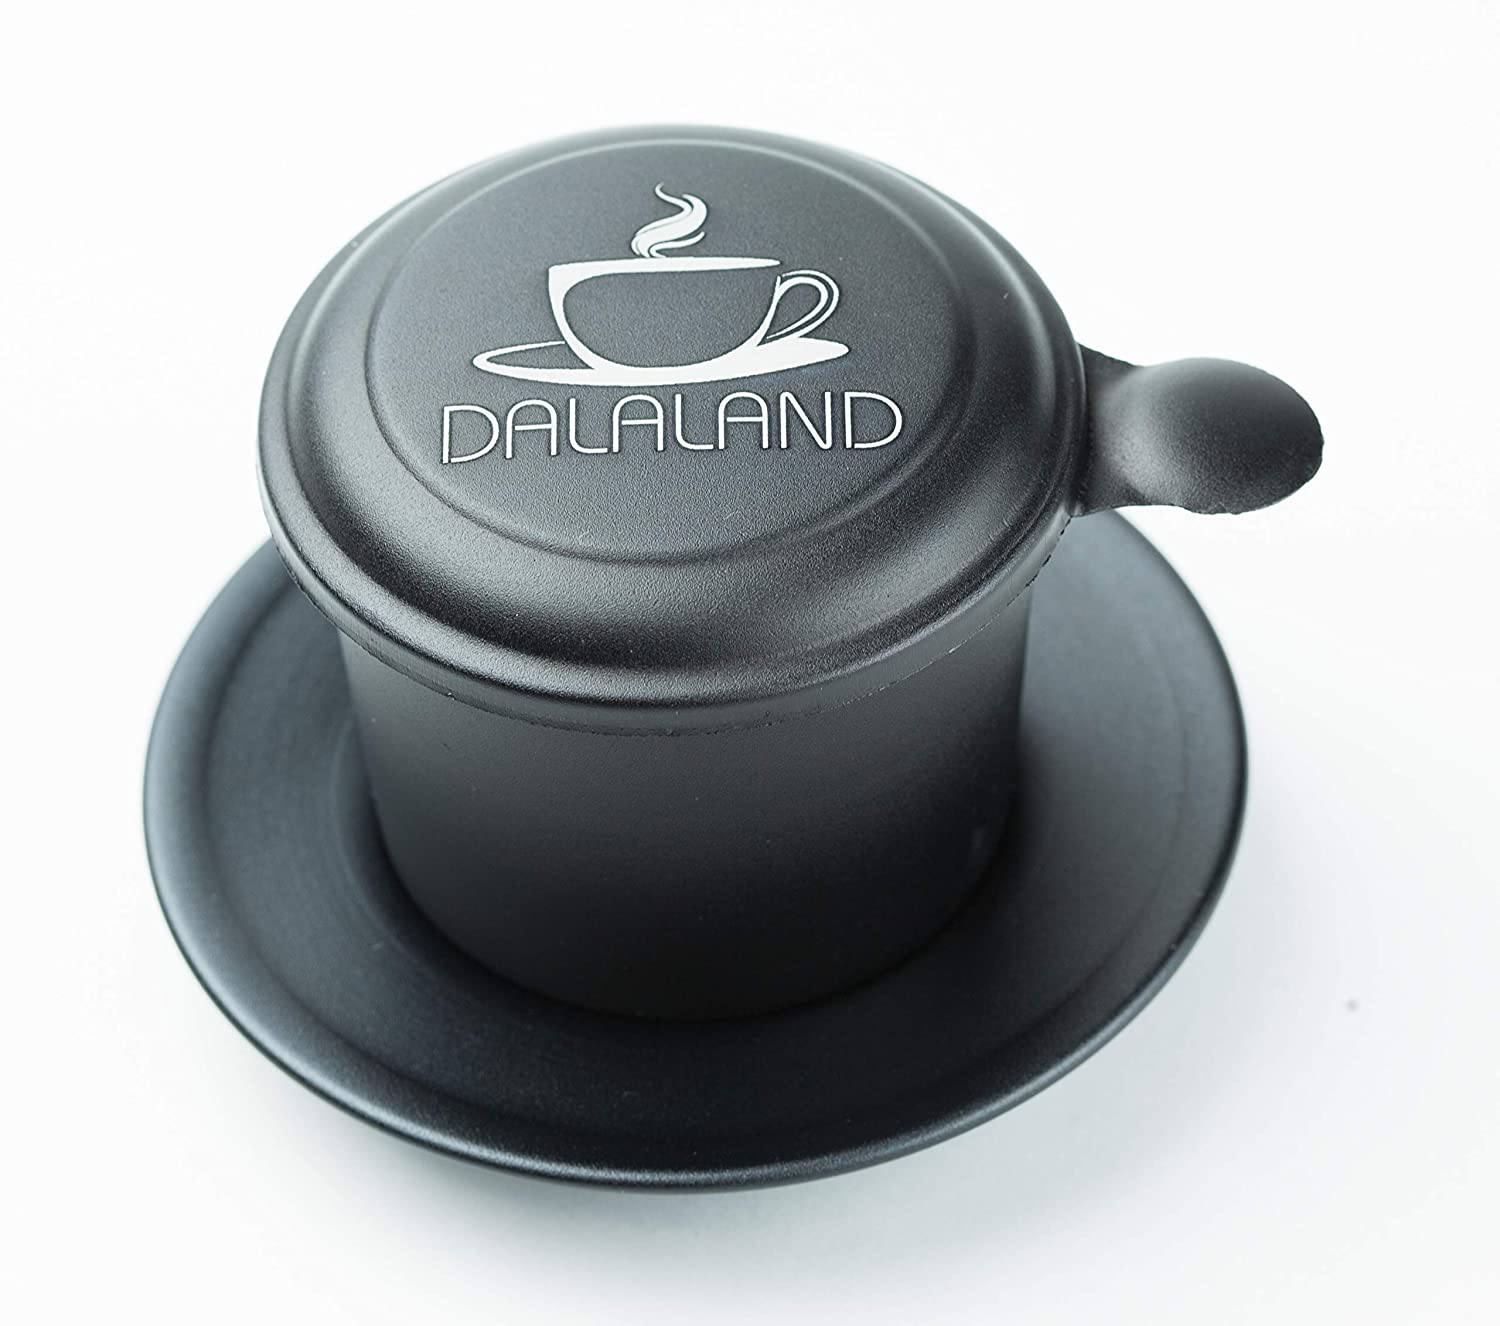 Vietnamese Aluminum Coffee Maker by DALALAND | Filter Press Down Insert | Dripper Mechanism - Made in Vietnam – Full Set Medium Size 8oz